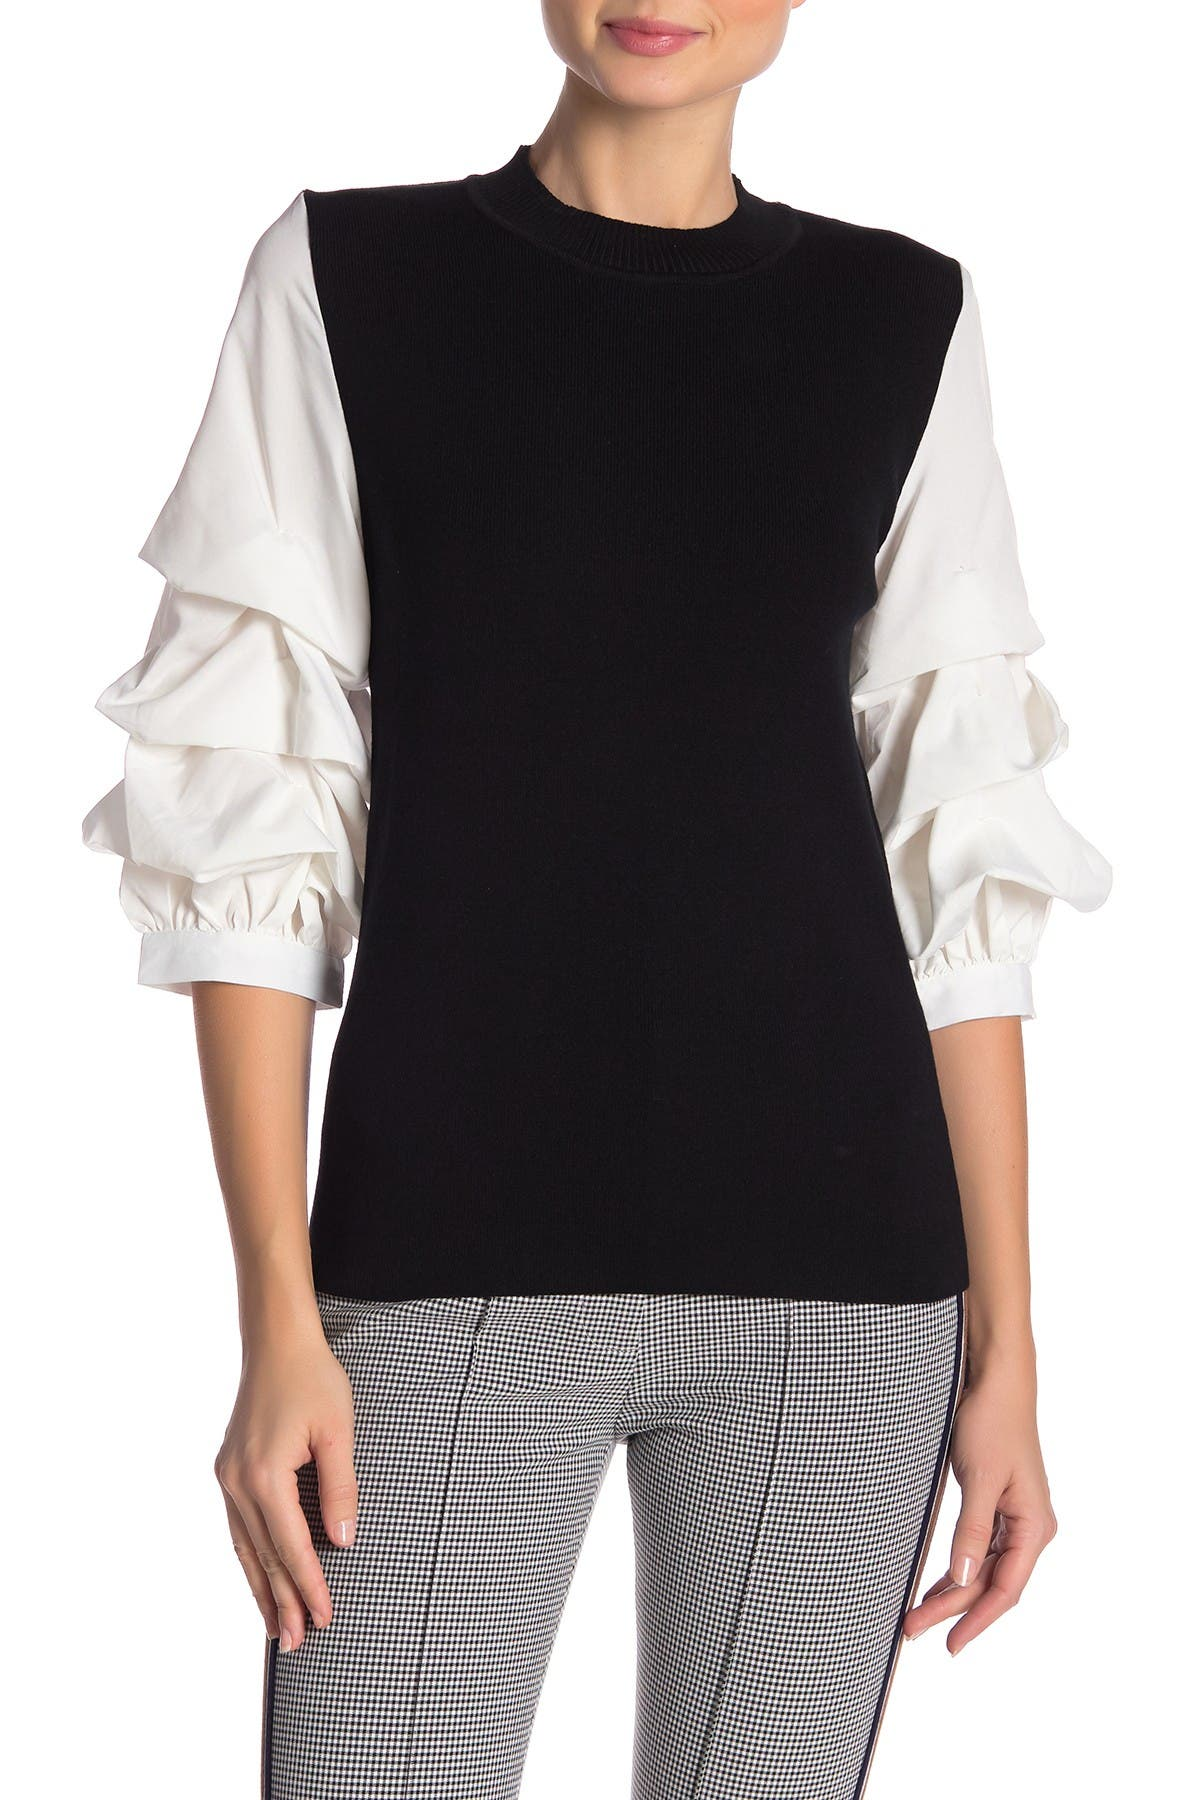 Image of Gracia Layered Sleeve Knit Top